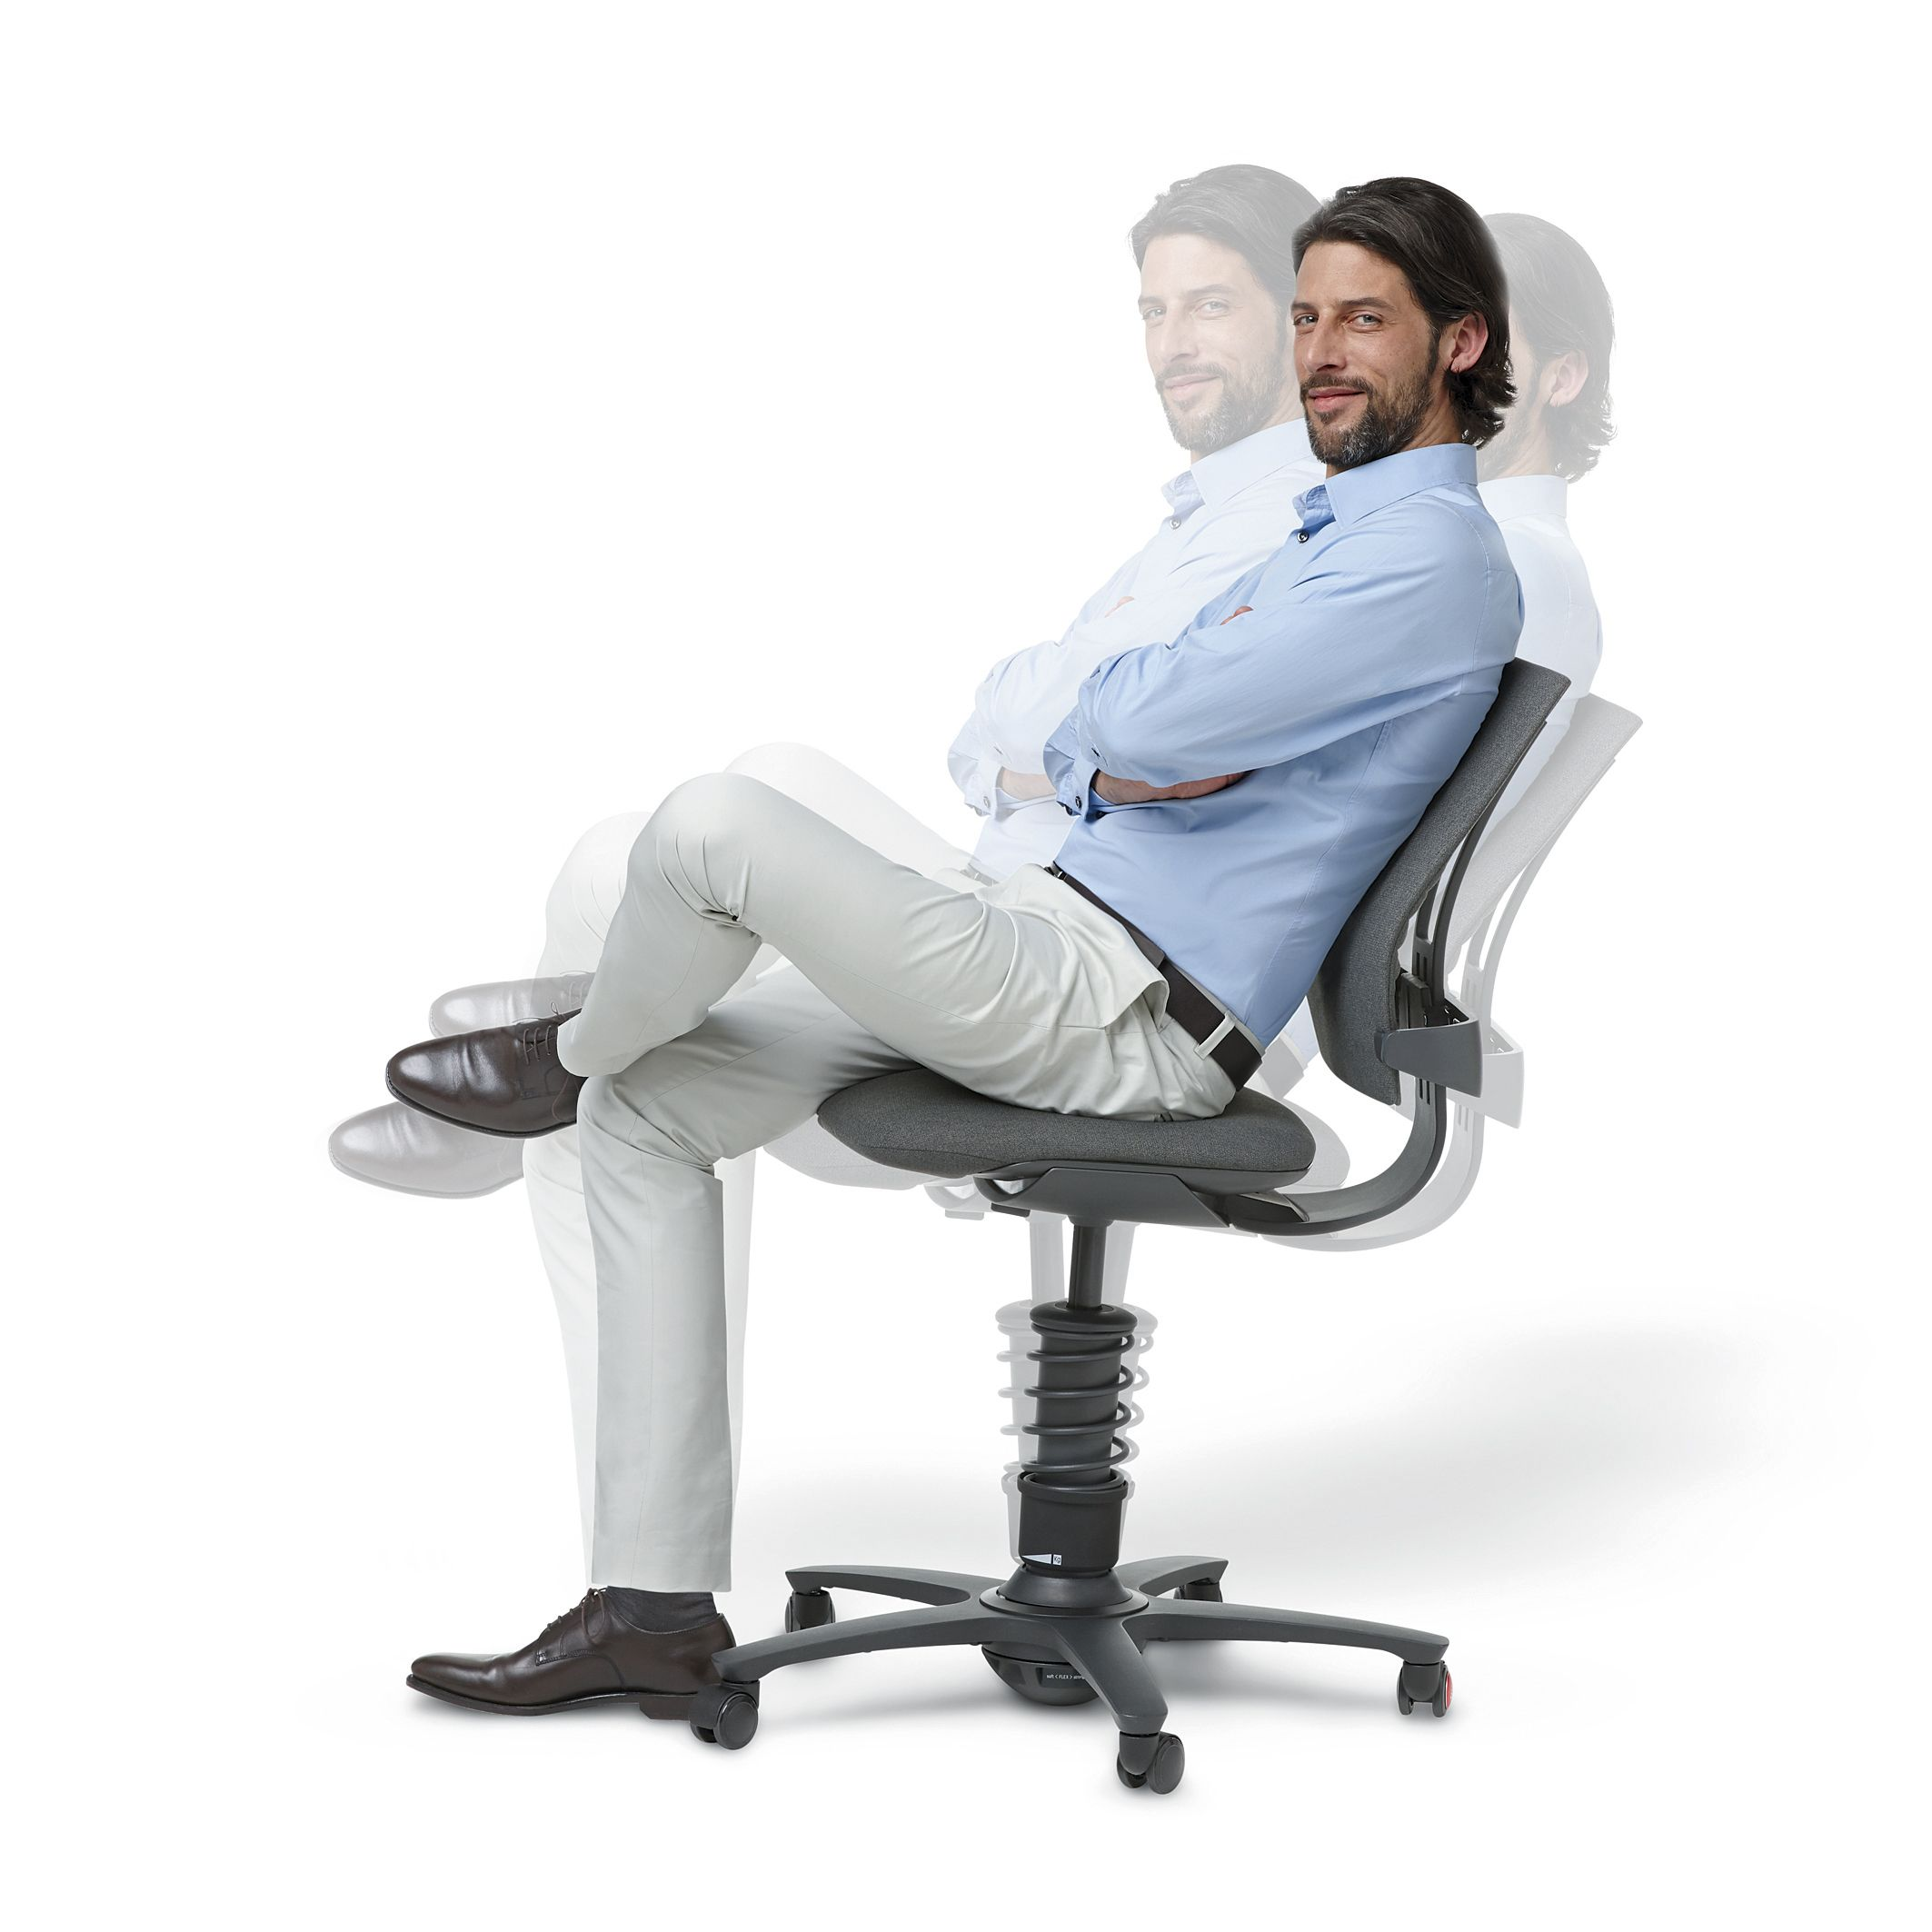 3dee Active Office Swivel Chair By Aeris The Most Innovative Office Chair In The World Which Gives You Back T Burostuhl Ergonomisch Burostuhl Gesund Sitzen